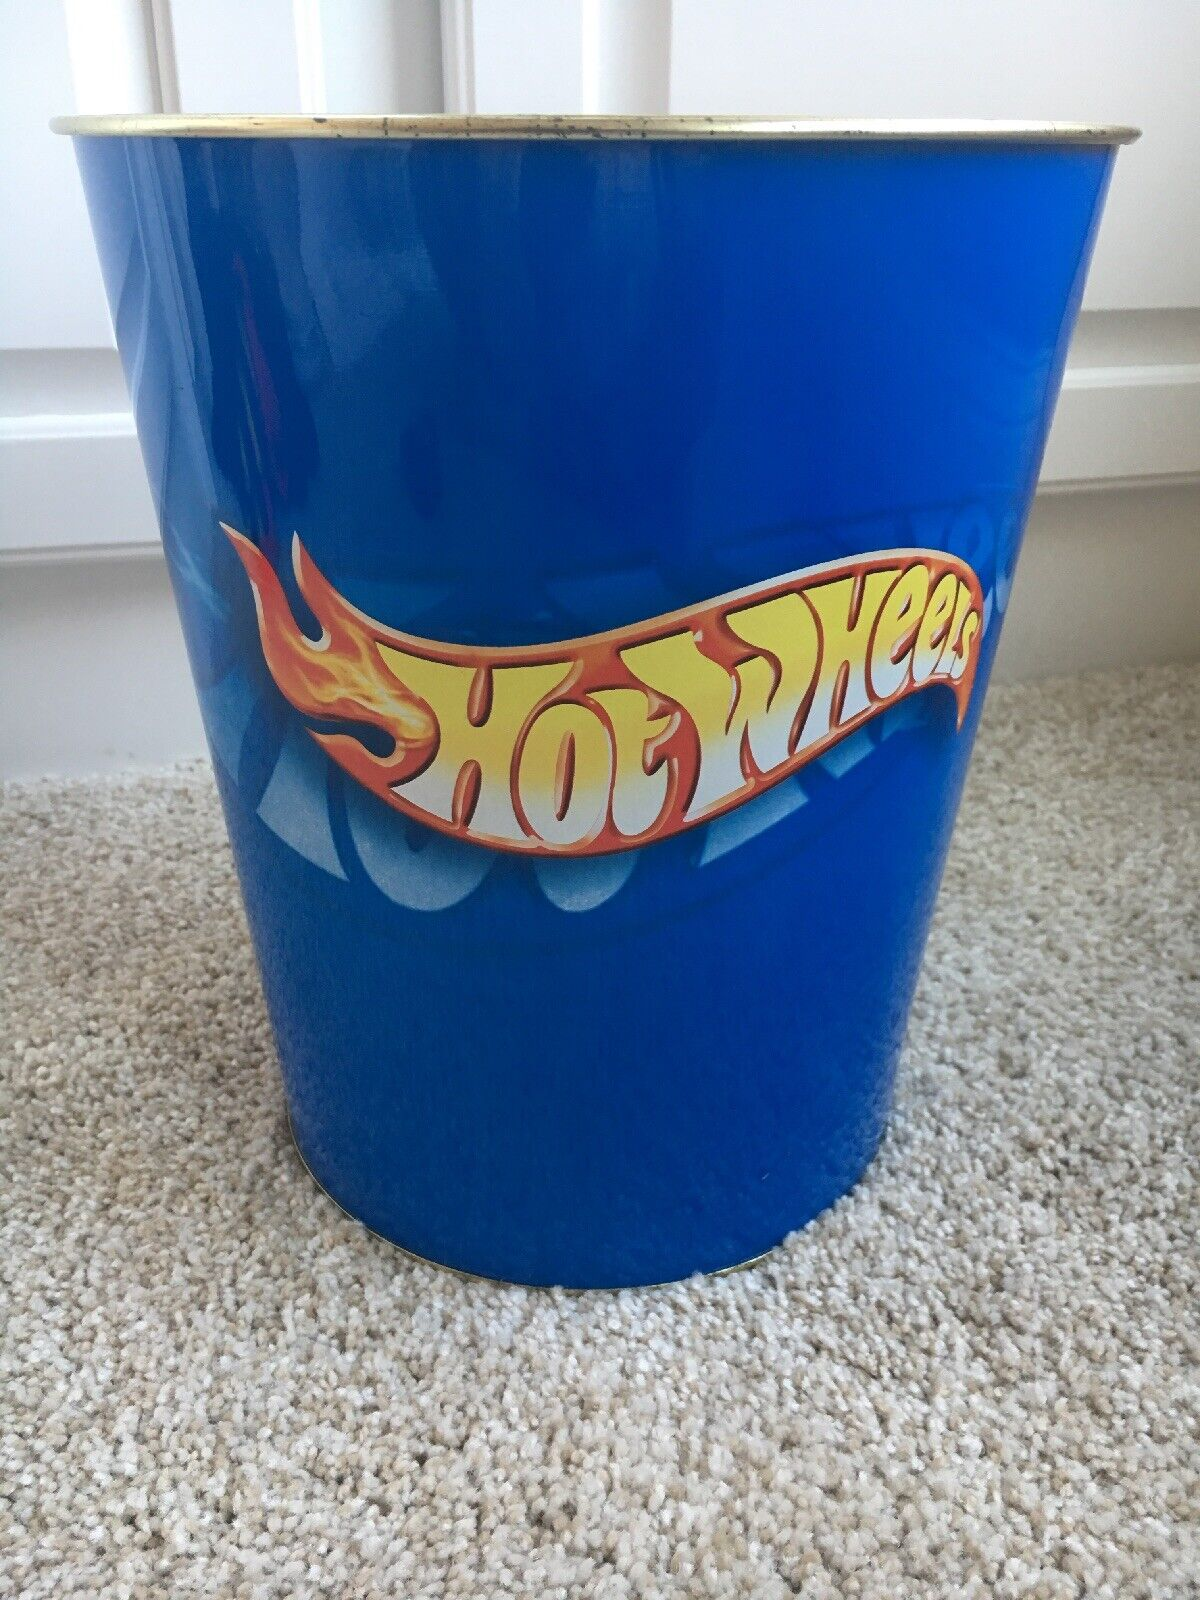 "Mattel Hot Wheels Metal Trash Can Waste Basket 10"" X 8.7"" Flames Logo Round Blue"